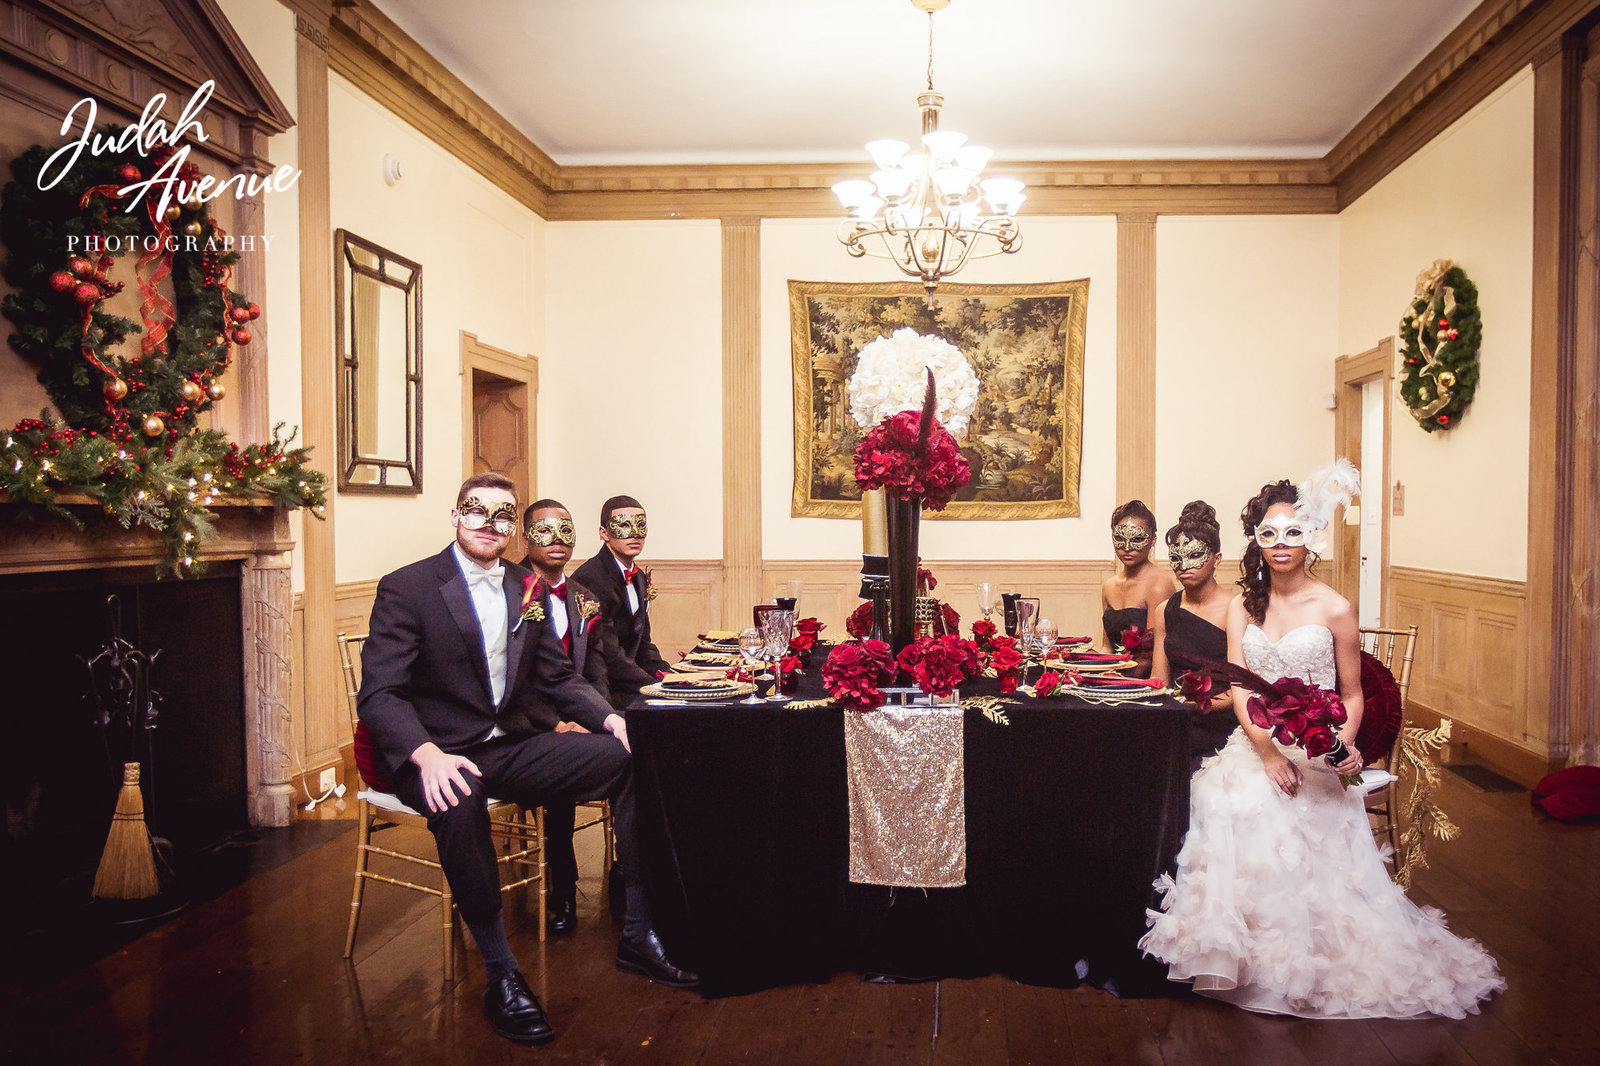 fr judah avenue wedding photographer in washington dc maryland and virginia-116